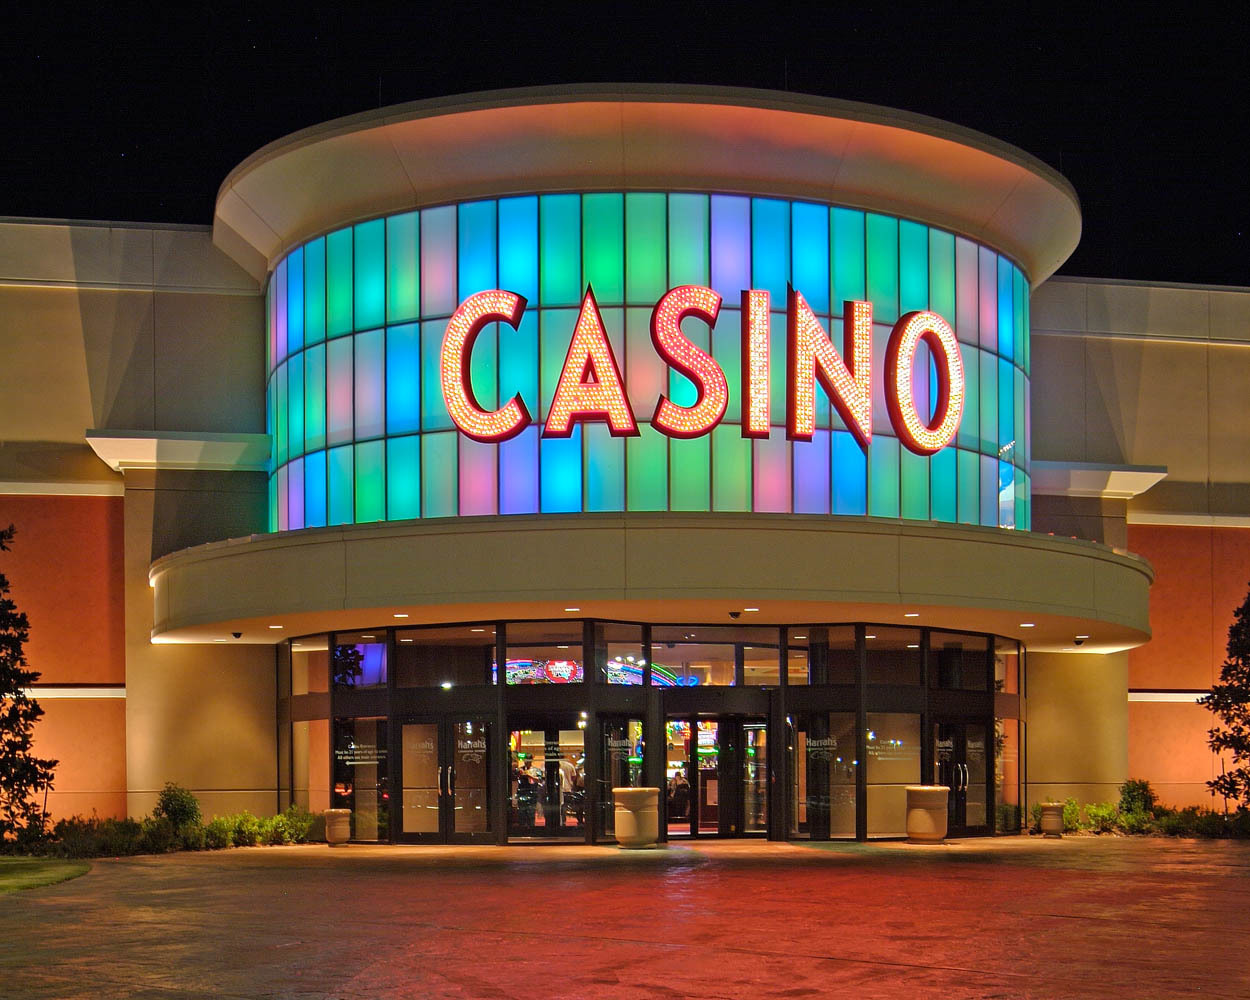 Casino harrahs louisiana shreveport charlestown west virginia casino